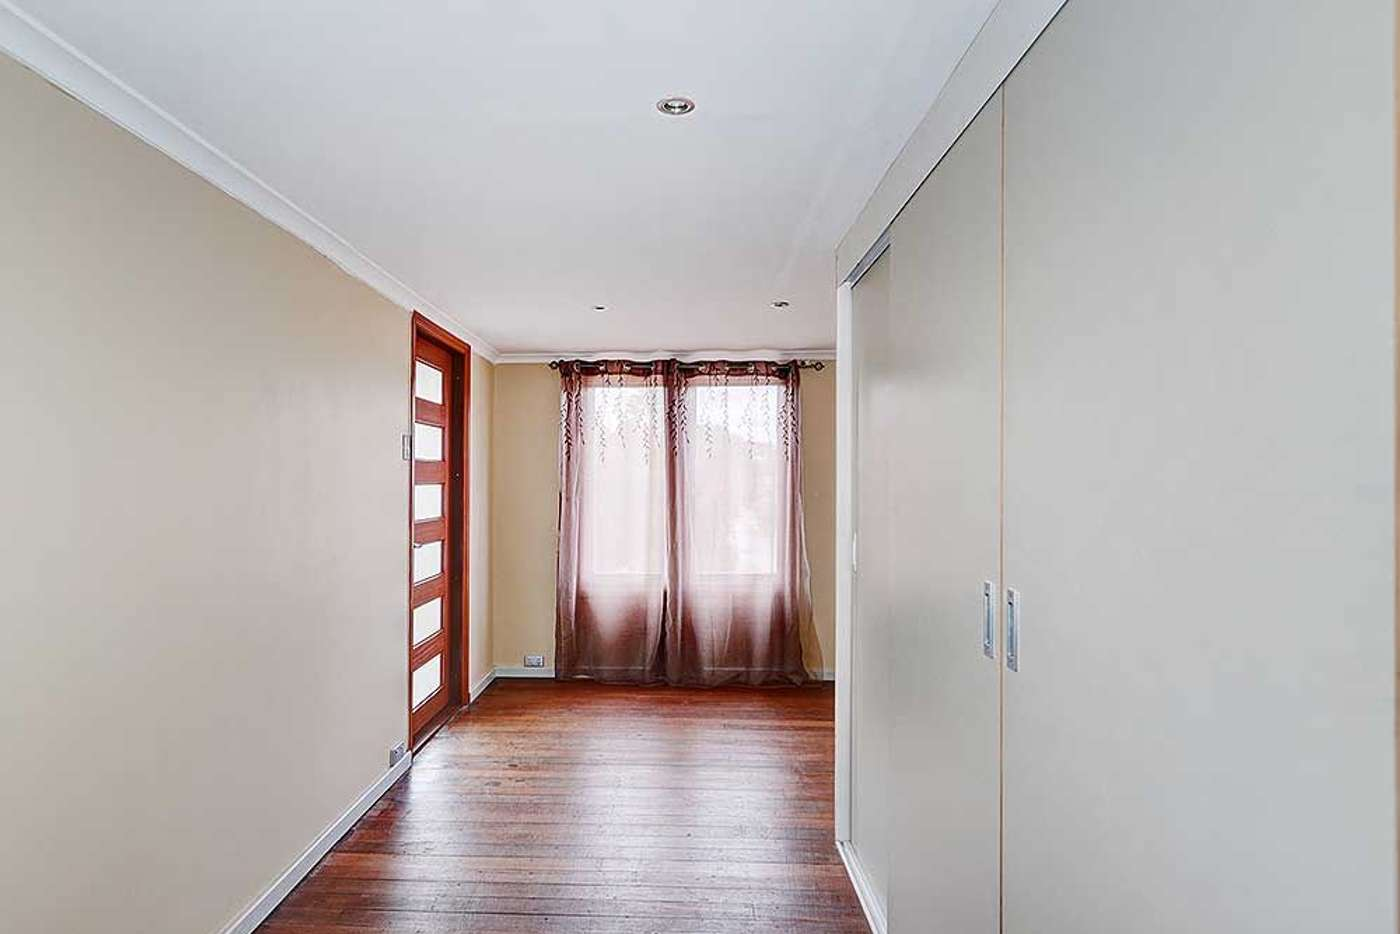 Sixth view of Homely house listing, 24 Schofield Street, Eden Hill WA 6054